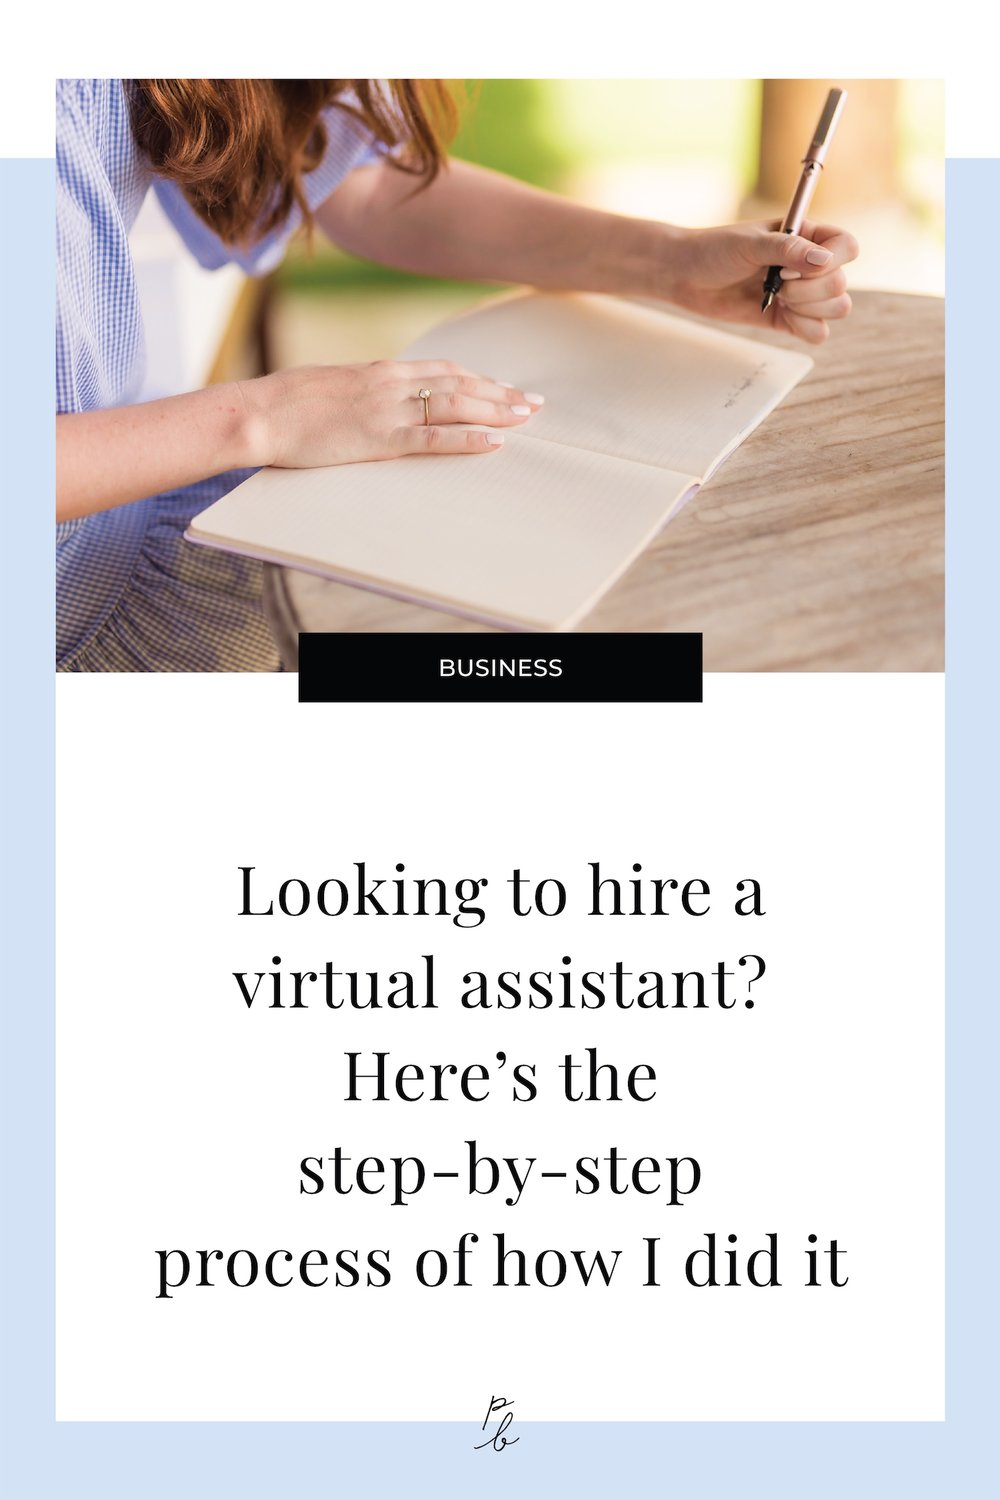 Looking to hire a virtual assistant? Here's the step-by-step process of how I did it-38.jpg